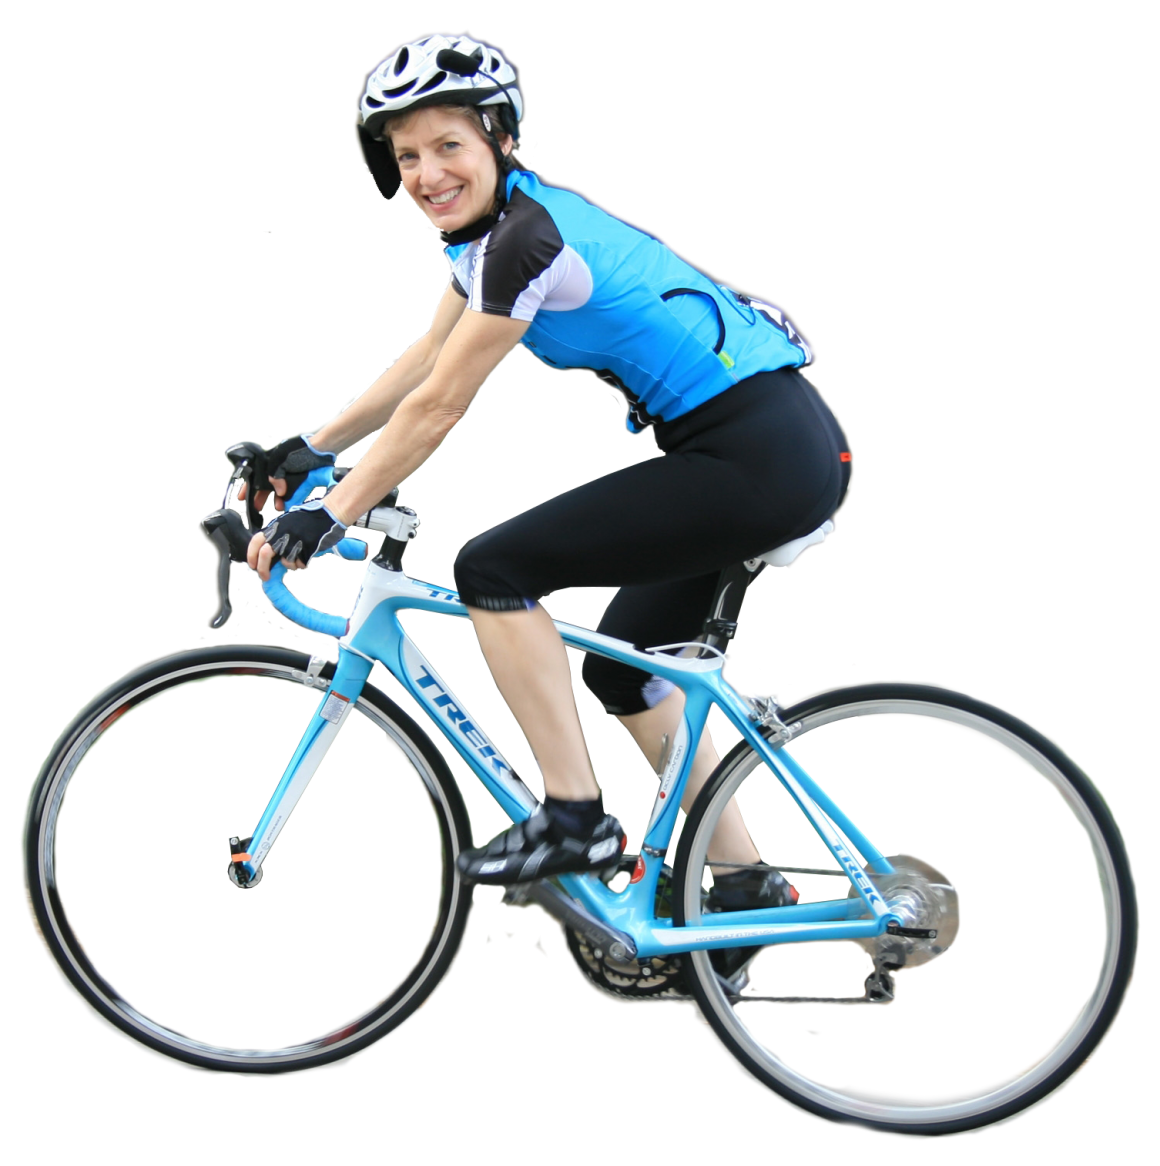 cycle clipart cycling sport